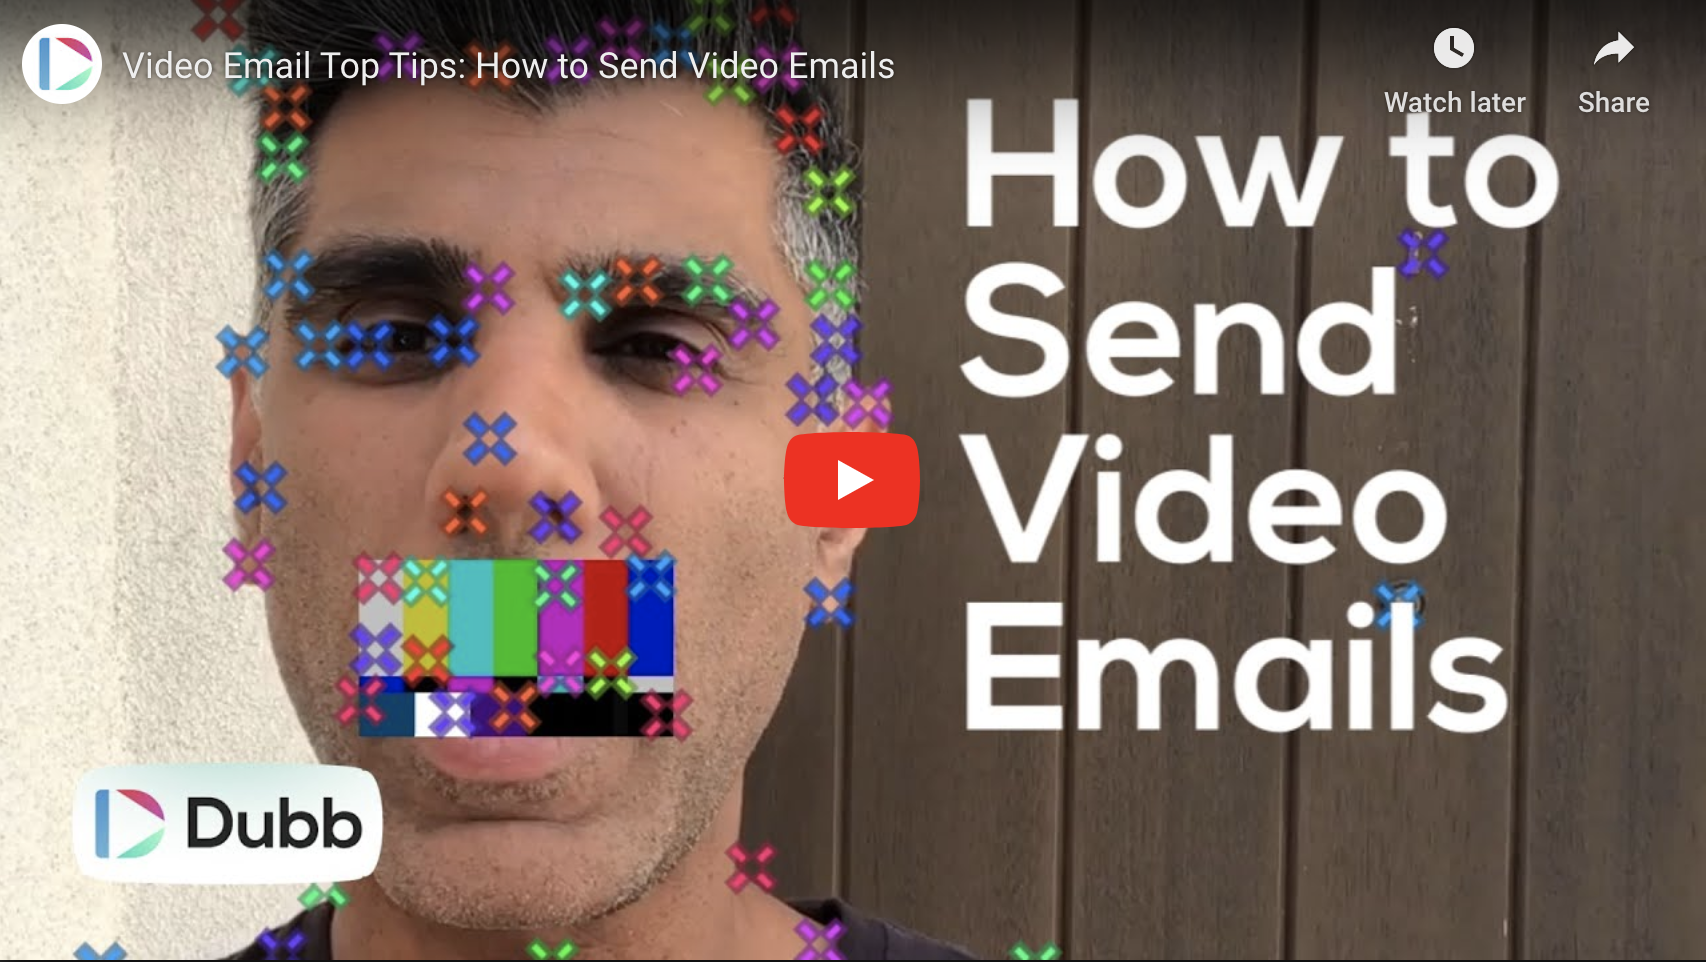 How to Send Video Emails